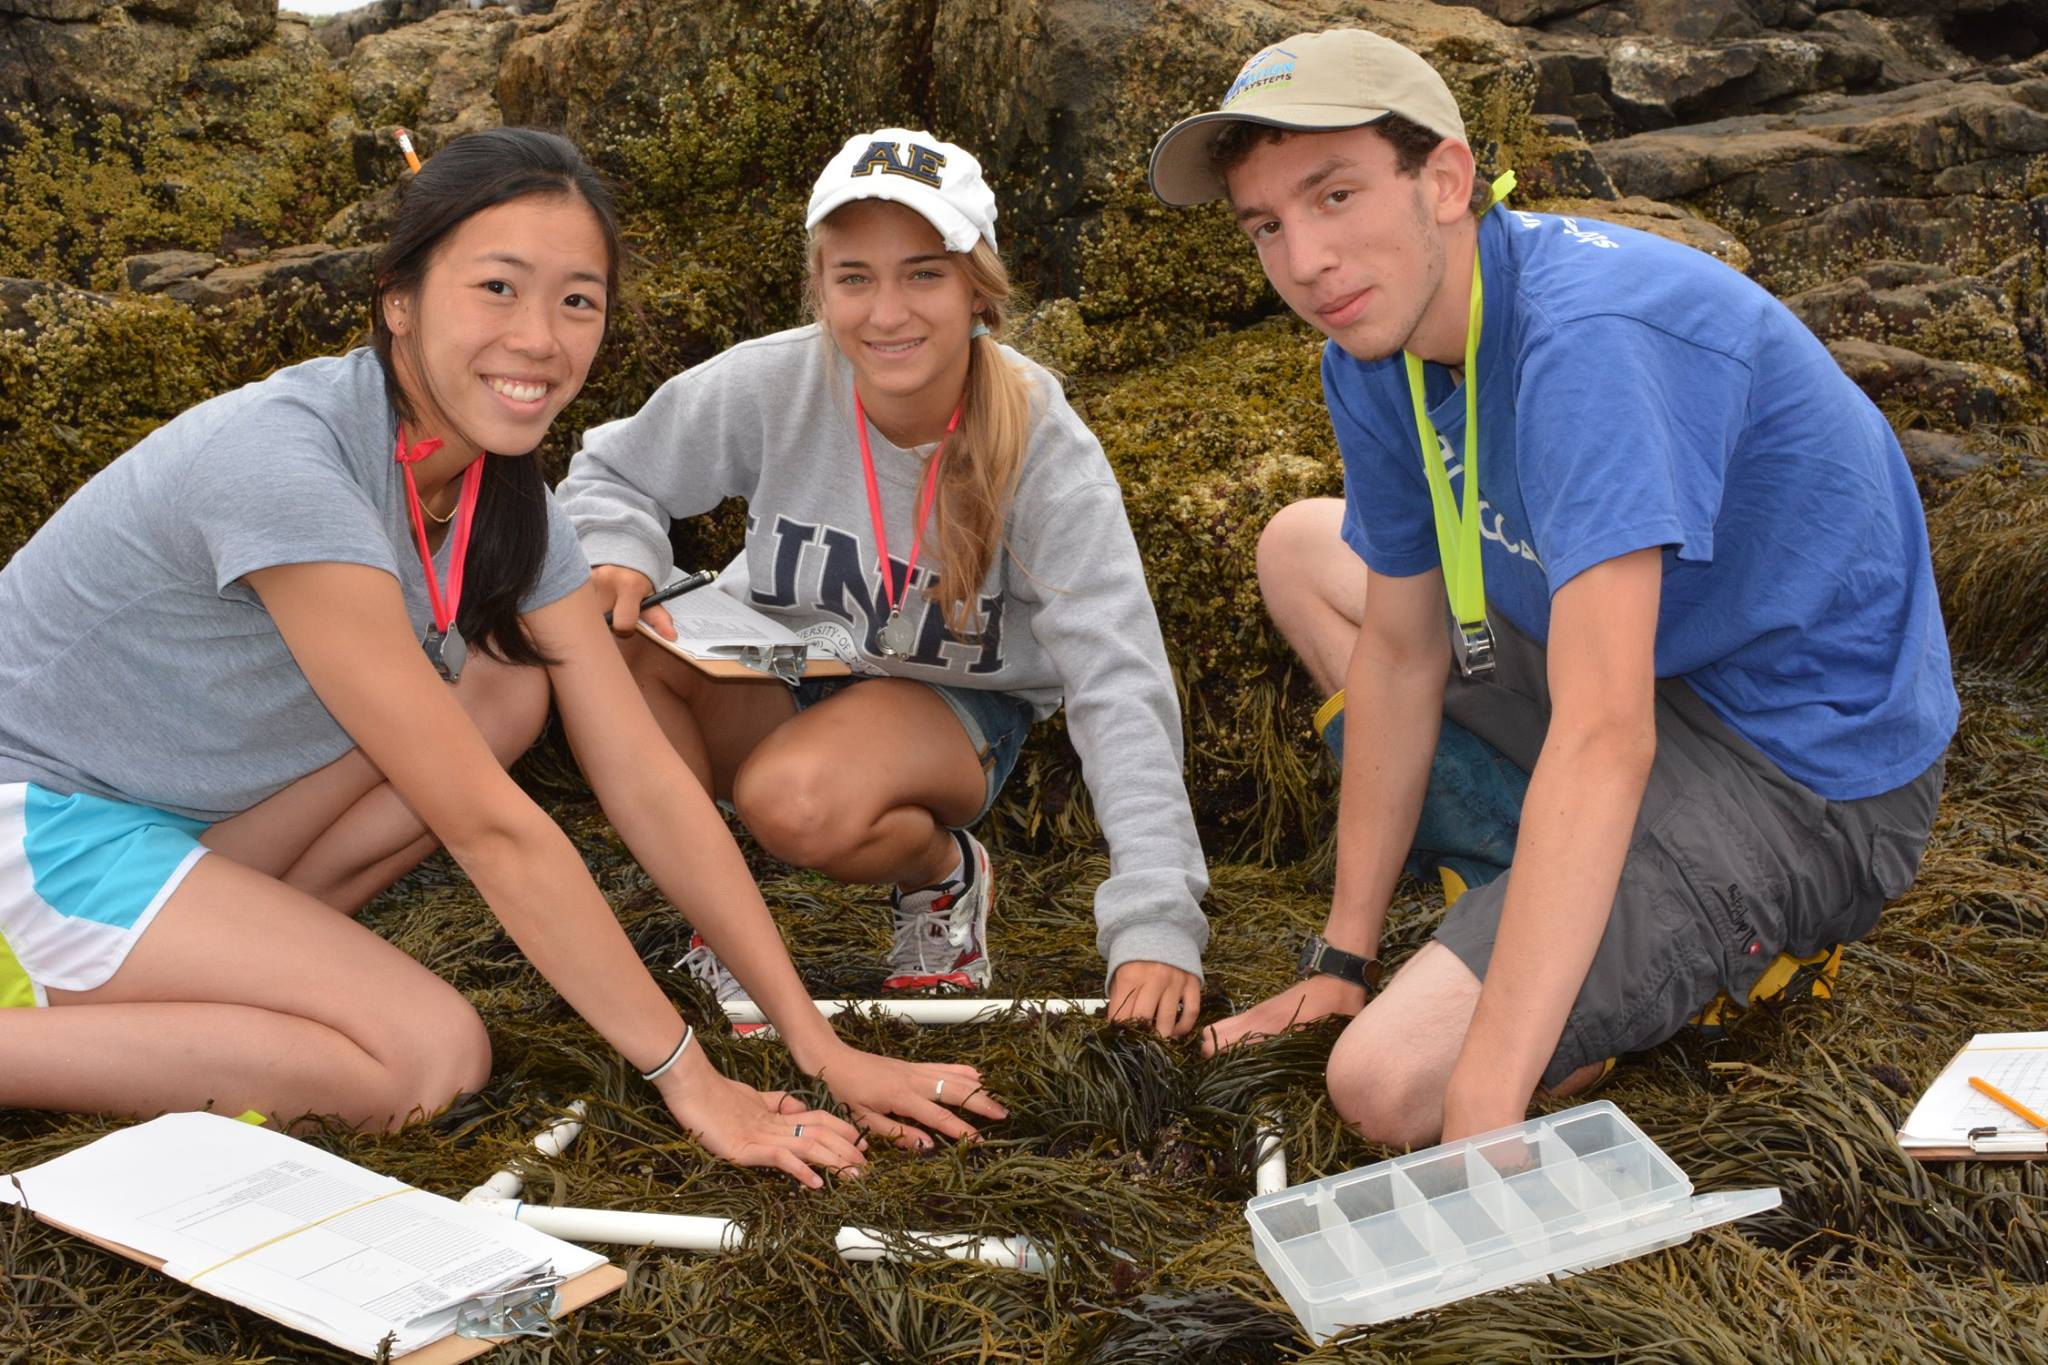 Photo of intertidal ecology interns collecting transect data in the field on Appledore Island